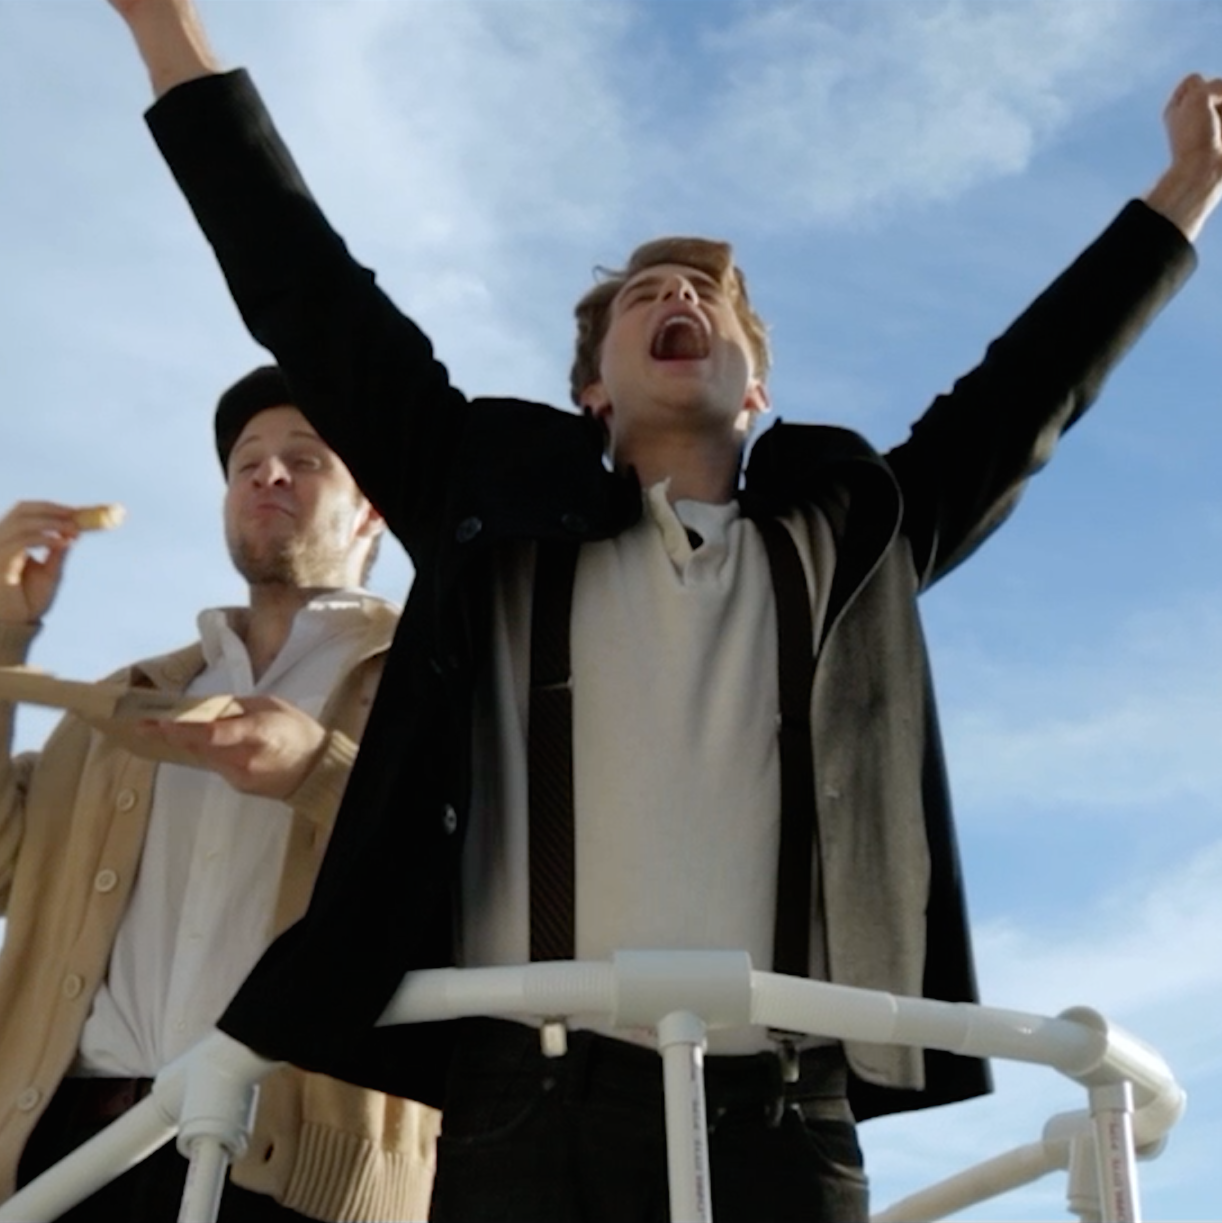 """CHEAP MOVIES - """"Cheap Titanic""""      The world's most iconic movies reimagined... very, very cheaply.      **Pilot episode coming soon**      Featuring Cameos from cast members of PITCH PERFECT and THE BOOK OF MORMON ON BROADWAY."""